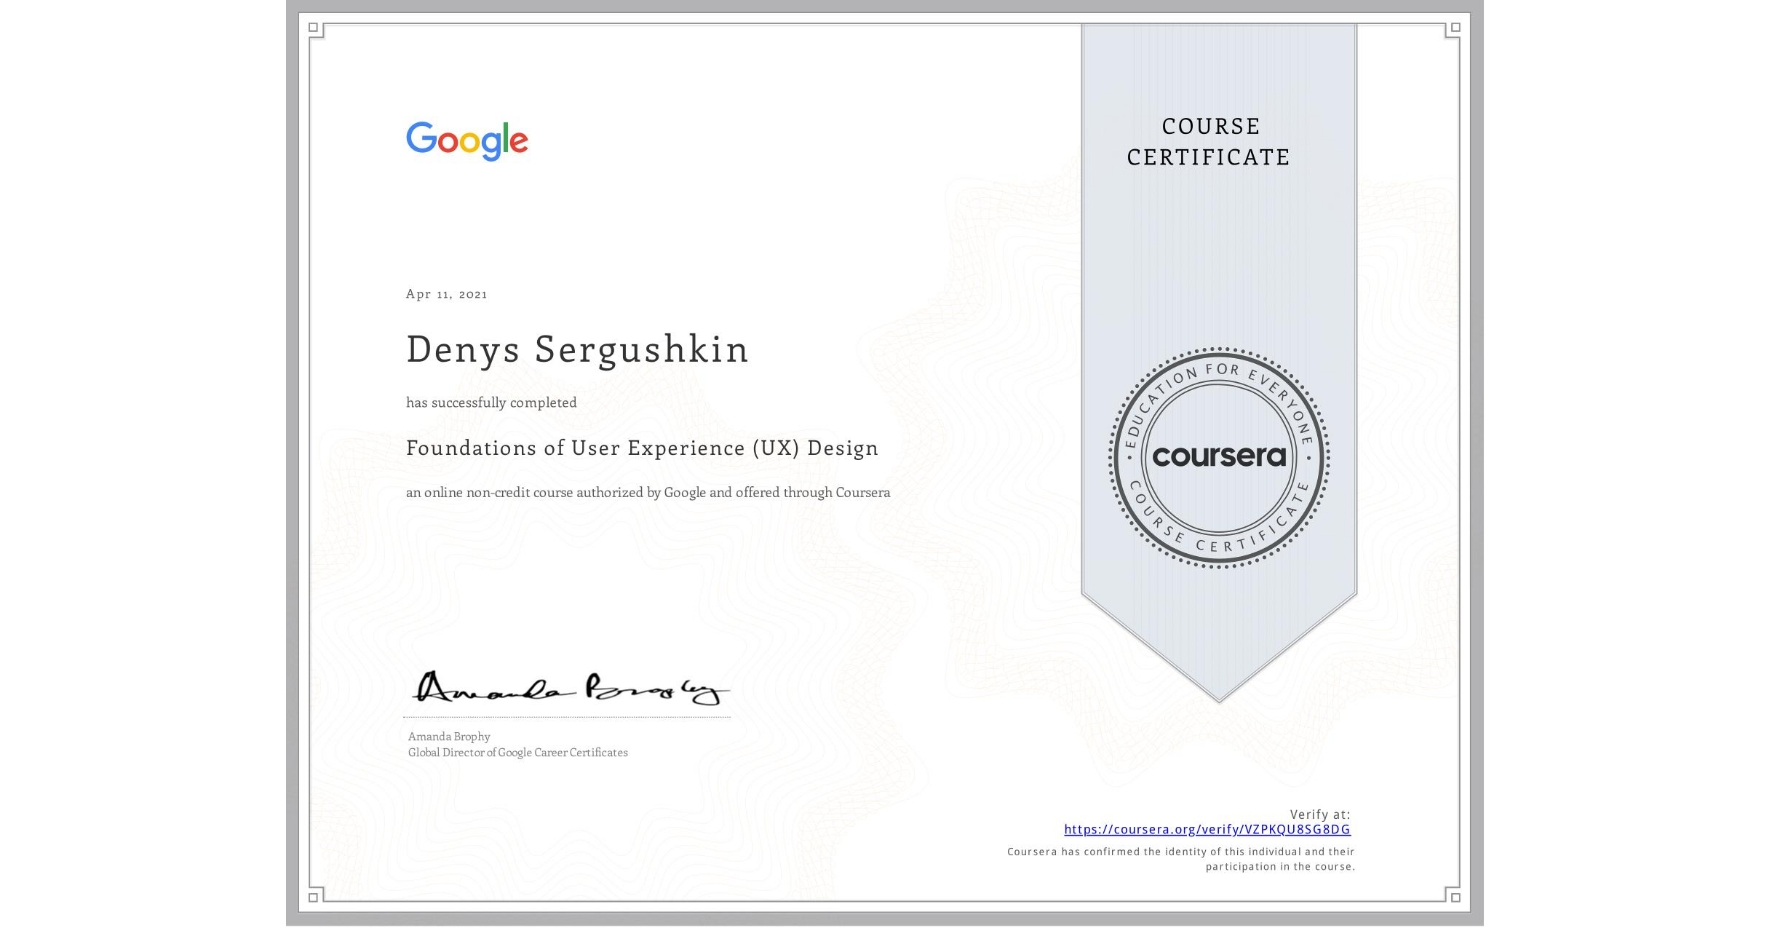 View certificate for Denys Sergushkin, Foundations of User Experience (UX) Design, an online non-credit course authorized by Google and offered through Coursera